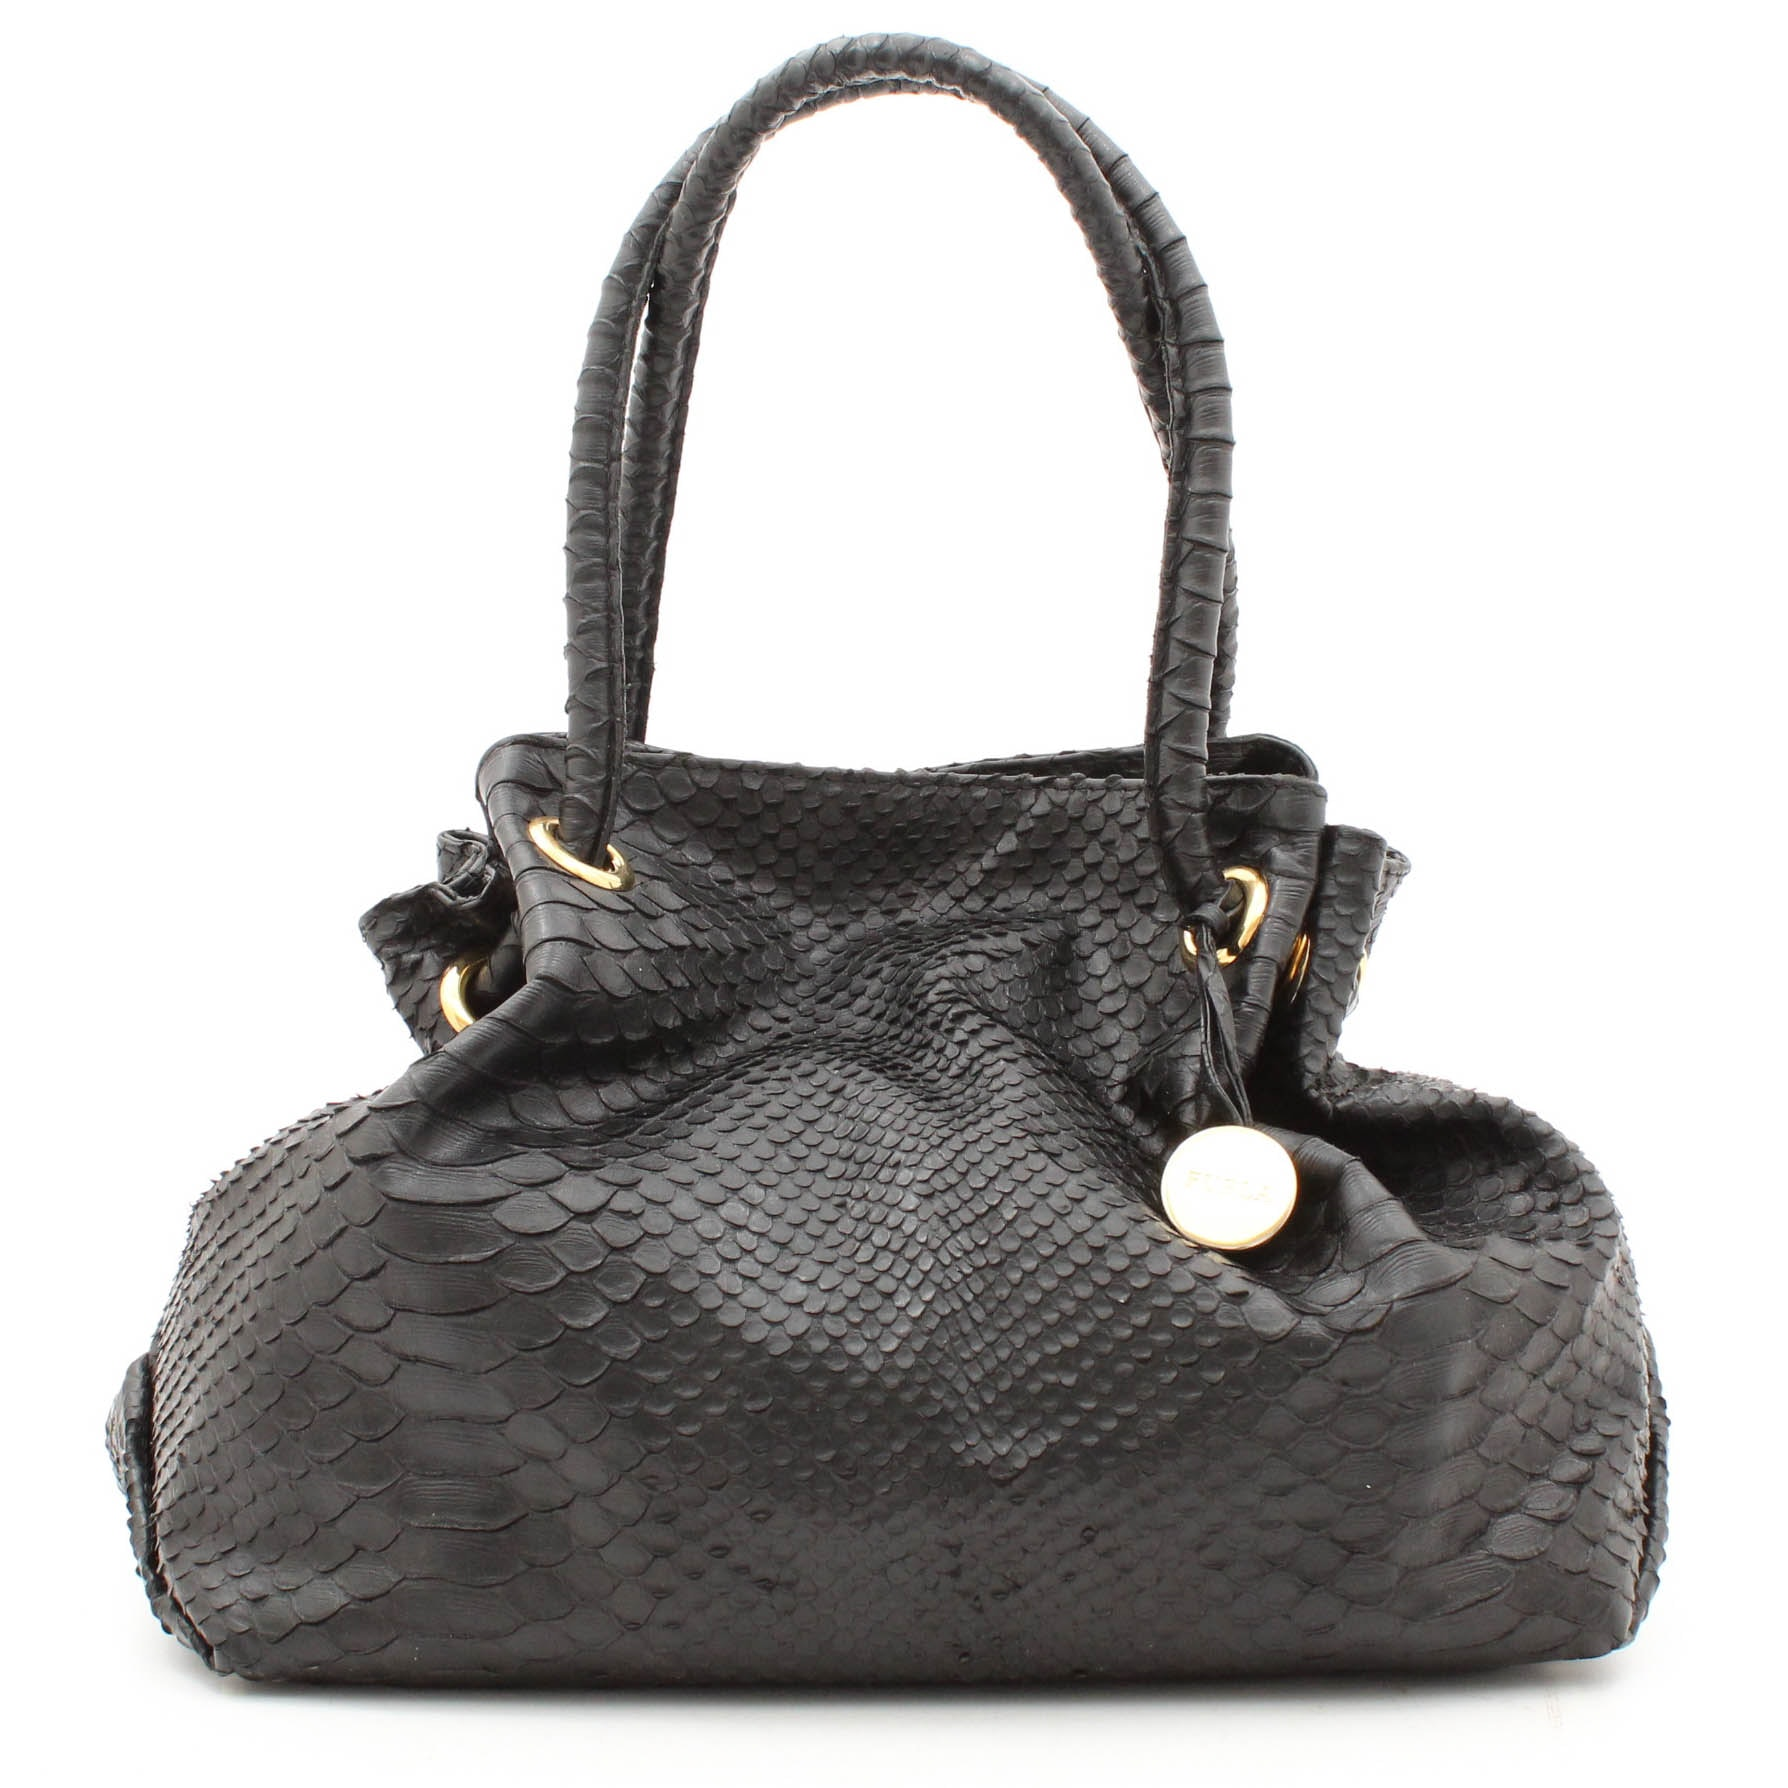 Furla Snakeskin Embossed Black Leather Slouch Hobo